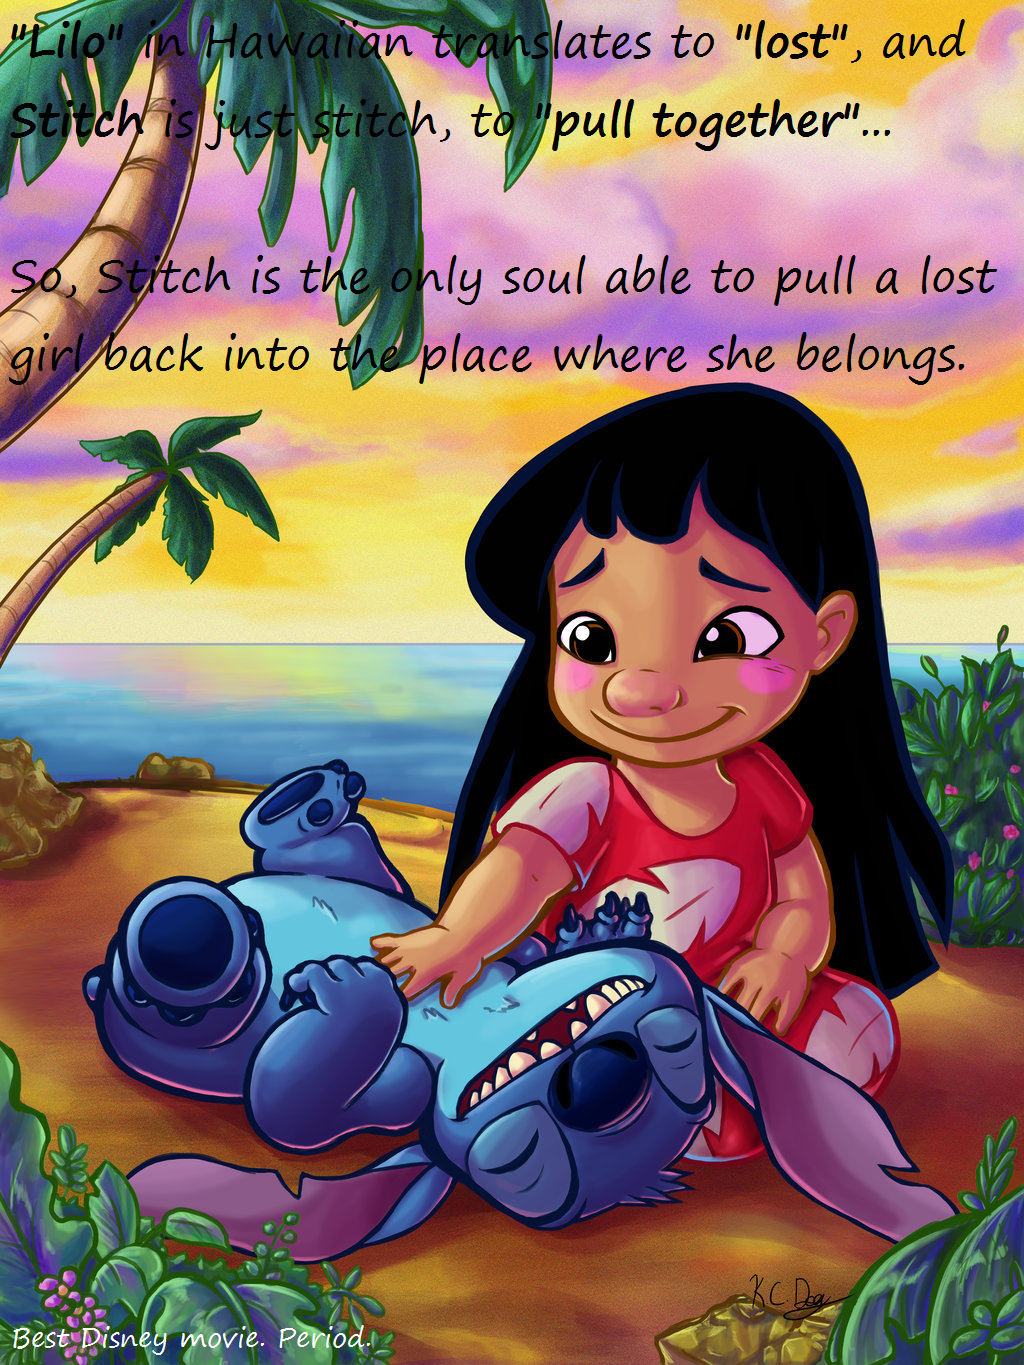 Lilo and Stitch has so much hidden meaning, and symbolism